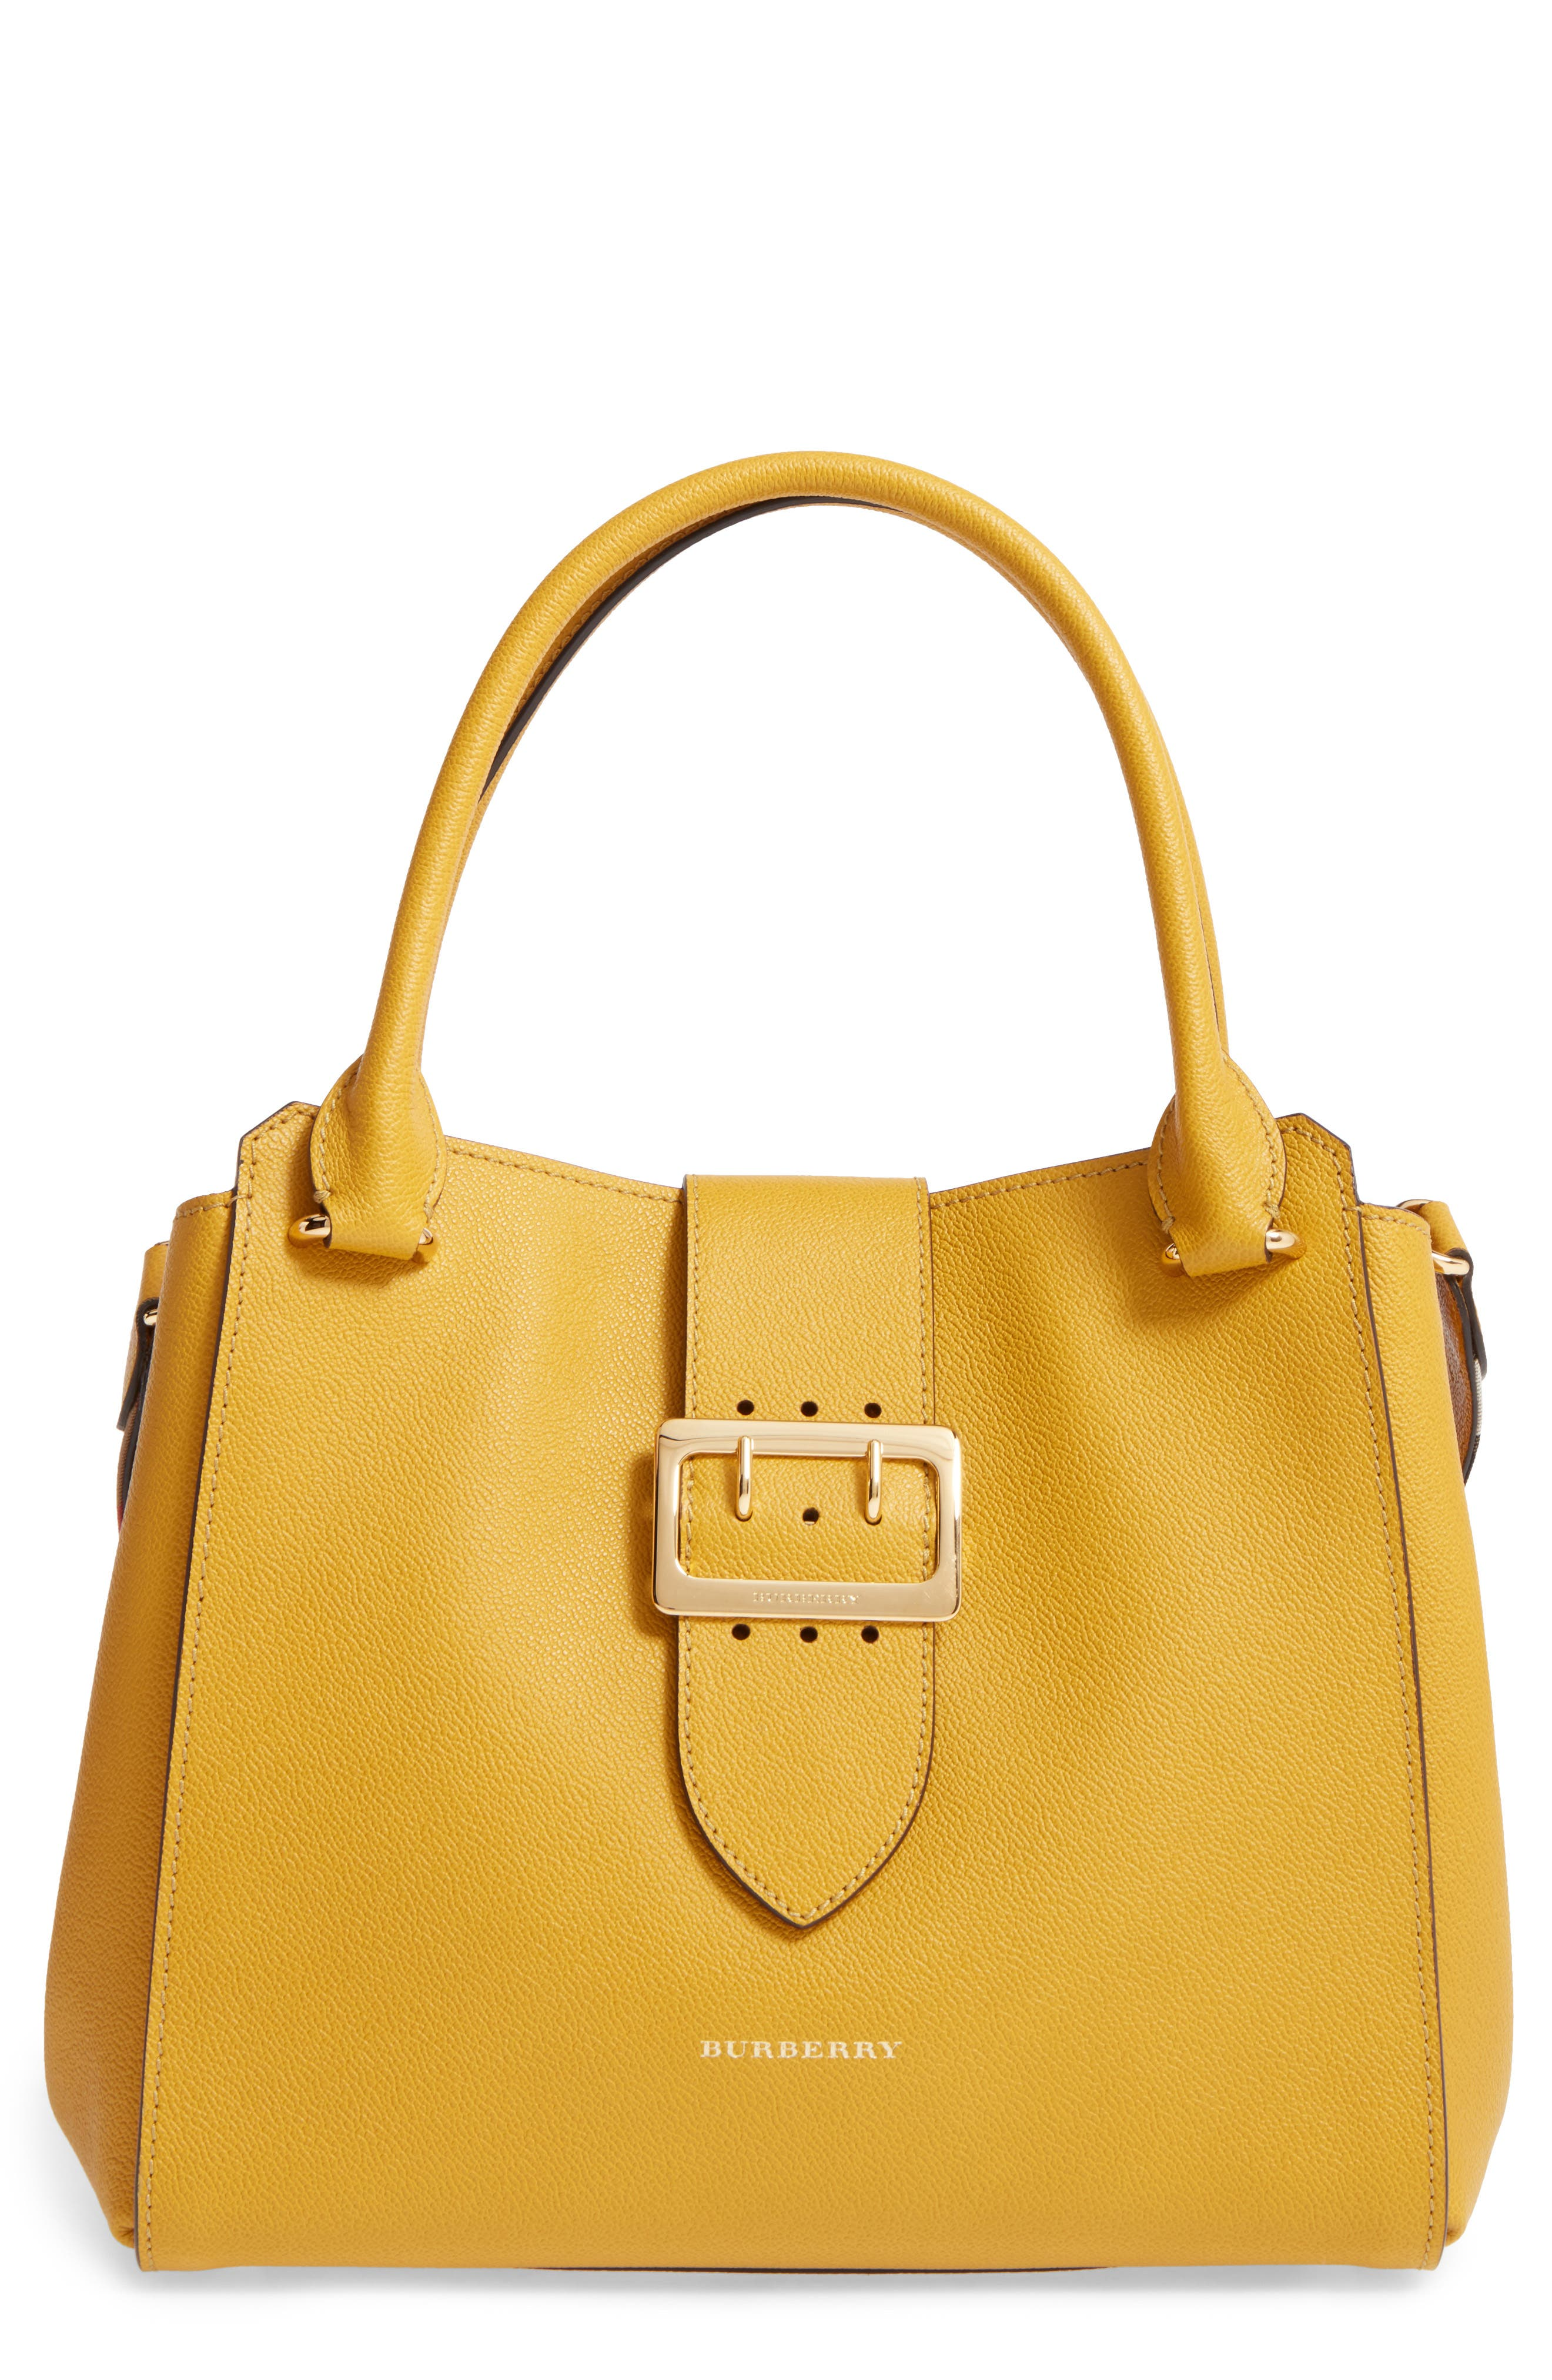 Alternate Image 1 Selected - Burberry Medium Calfskin Leather Tote